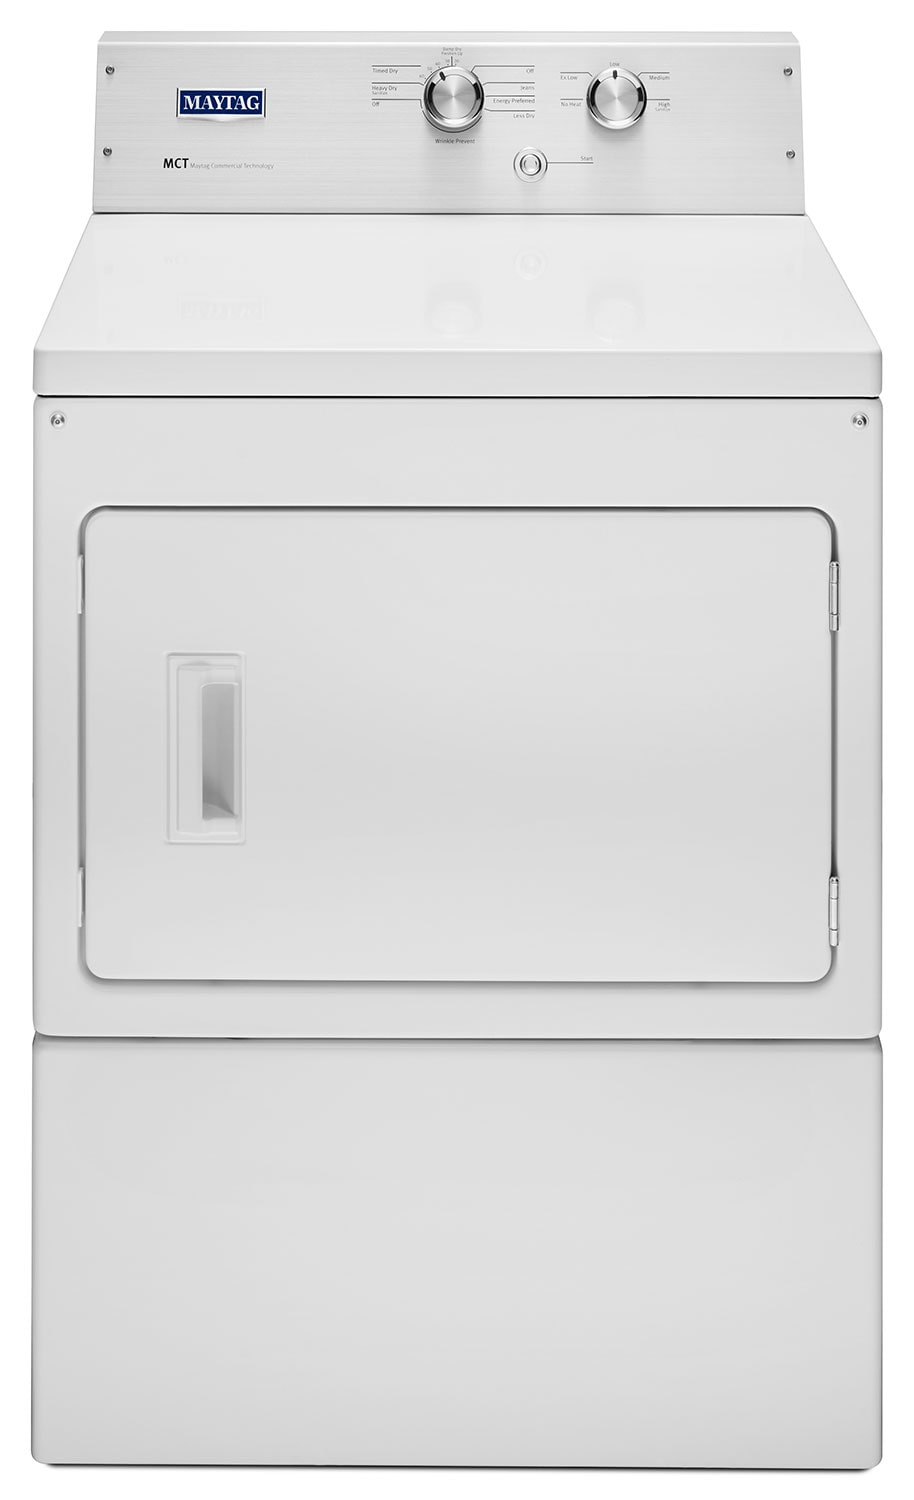 Maytag 7.4 Cu. Ft. Electric Dryer – YMEDP475EW